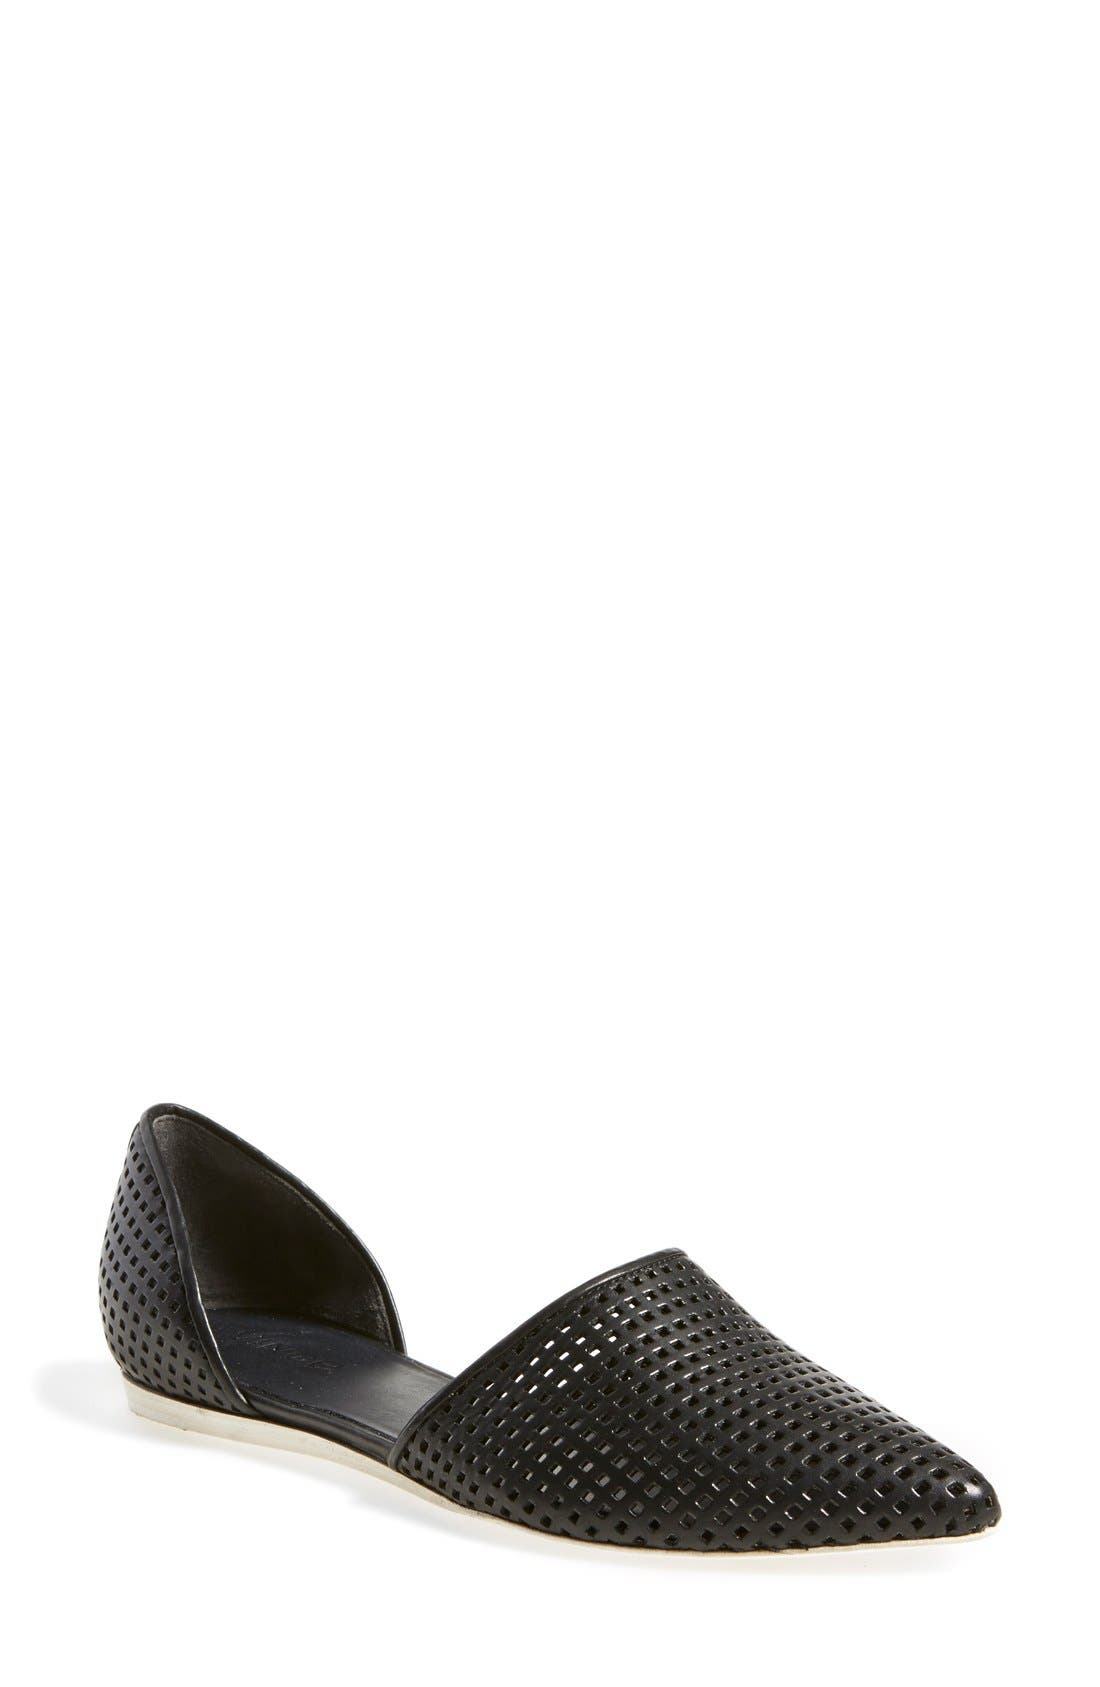 Main Image - Vince 'Nina 2' Perforated Leather D'Orsay Flat (Women)